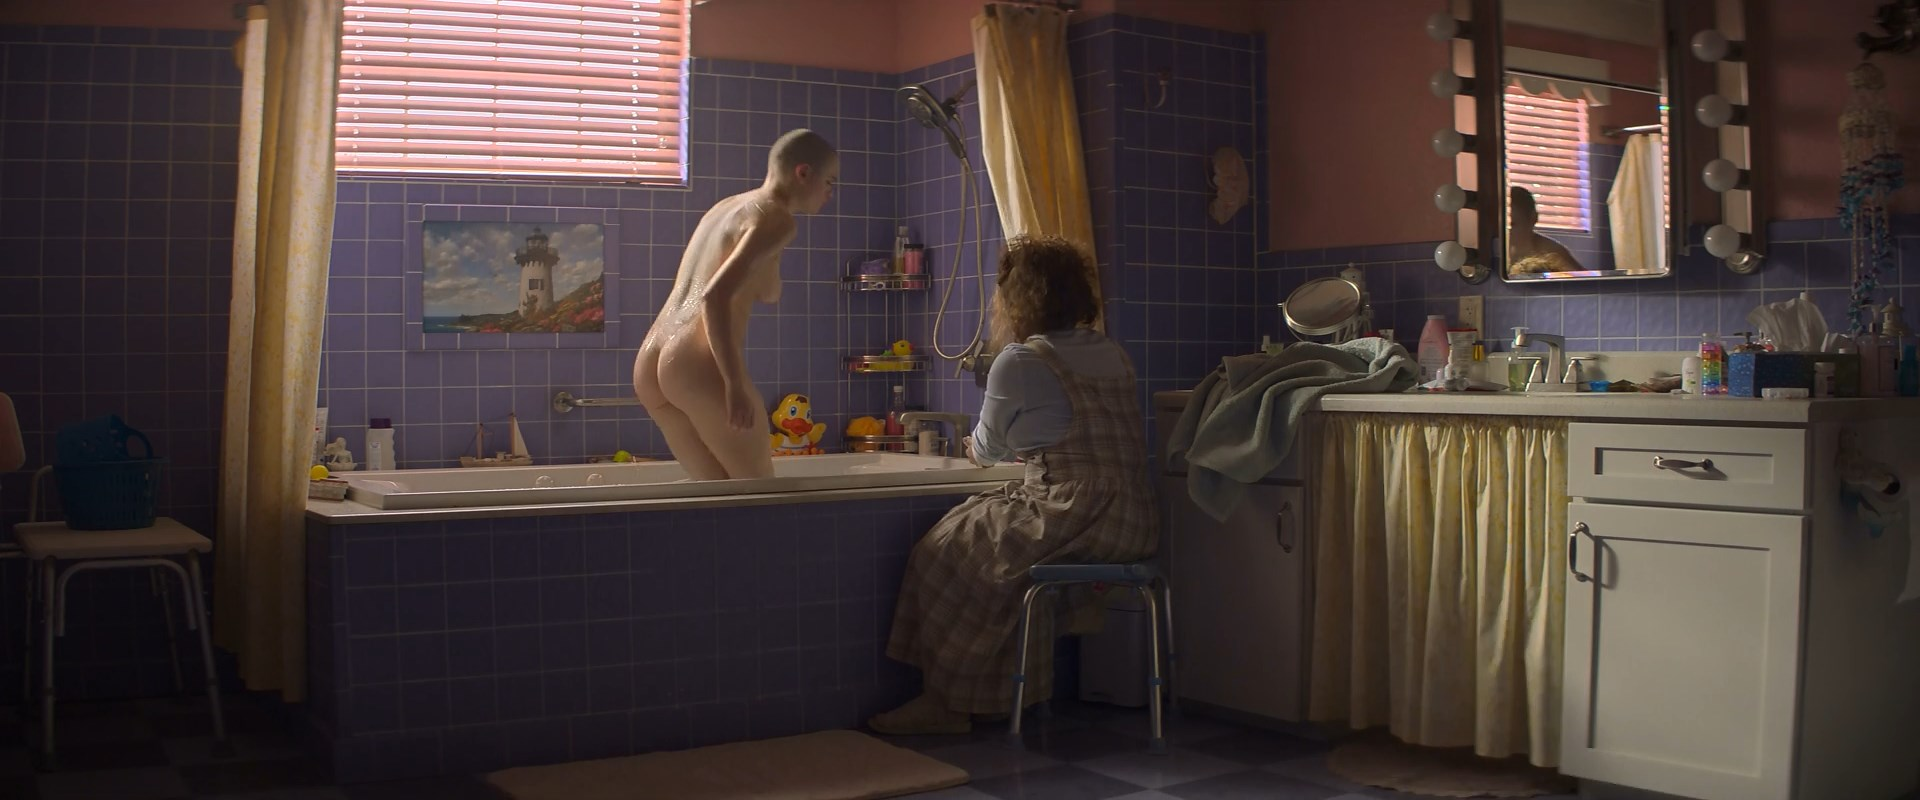 Joey King nude - The Act s01e04 (2019)